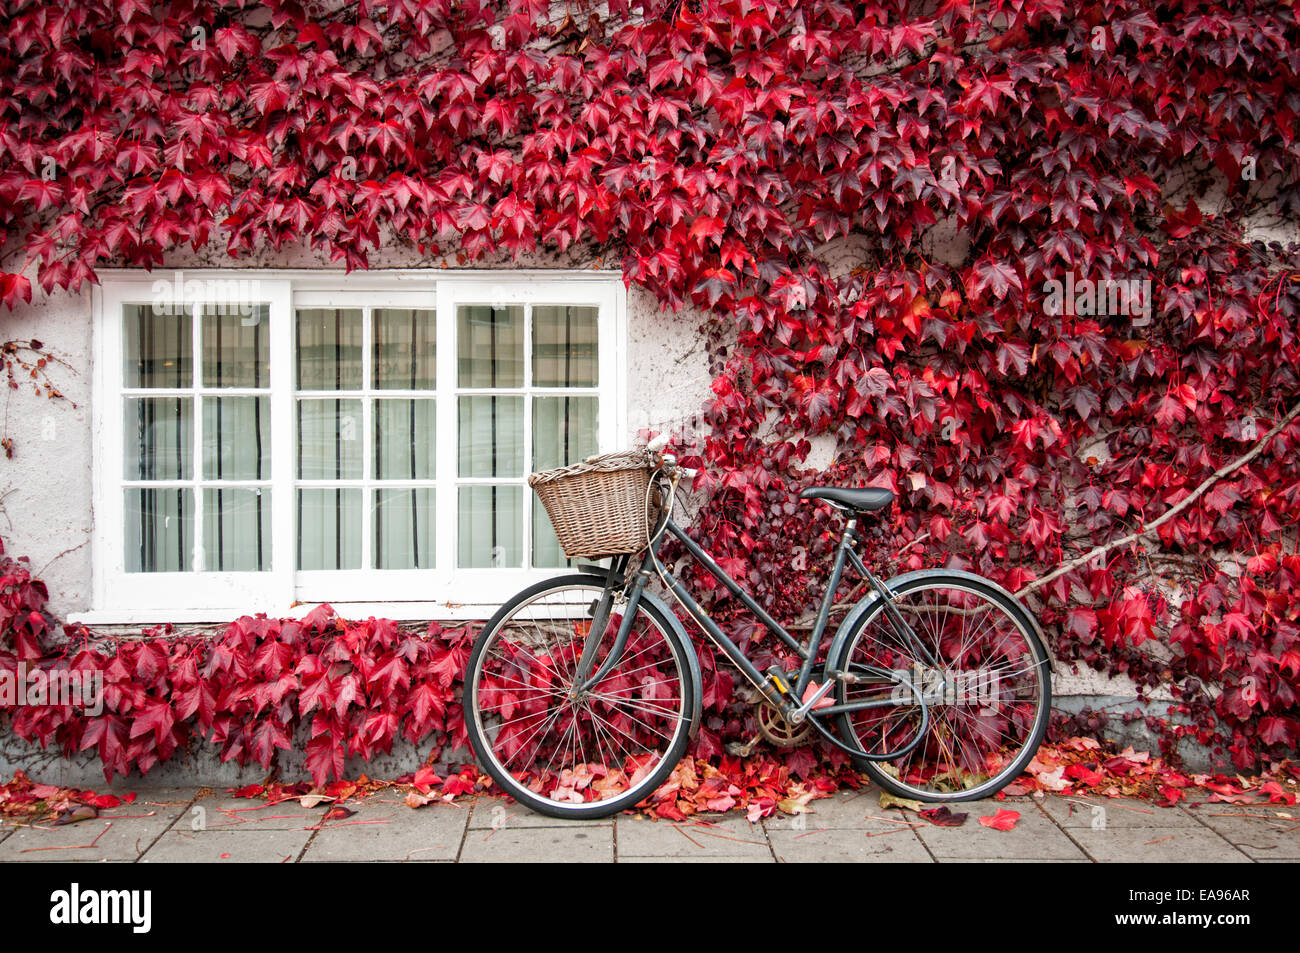 bicycle leaning against an ivy covered building in Oxford England in autumn - Stock Image